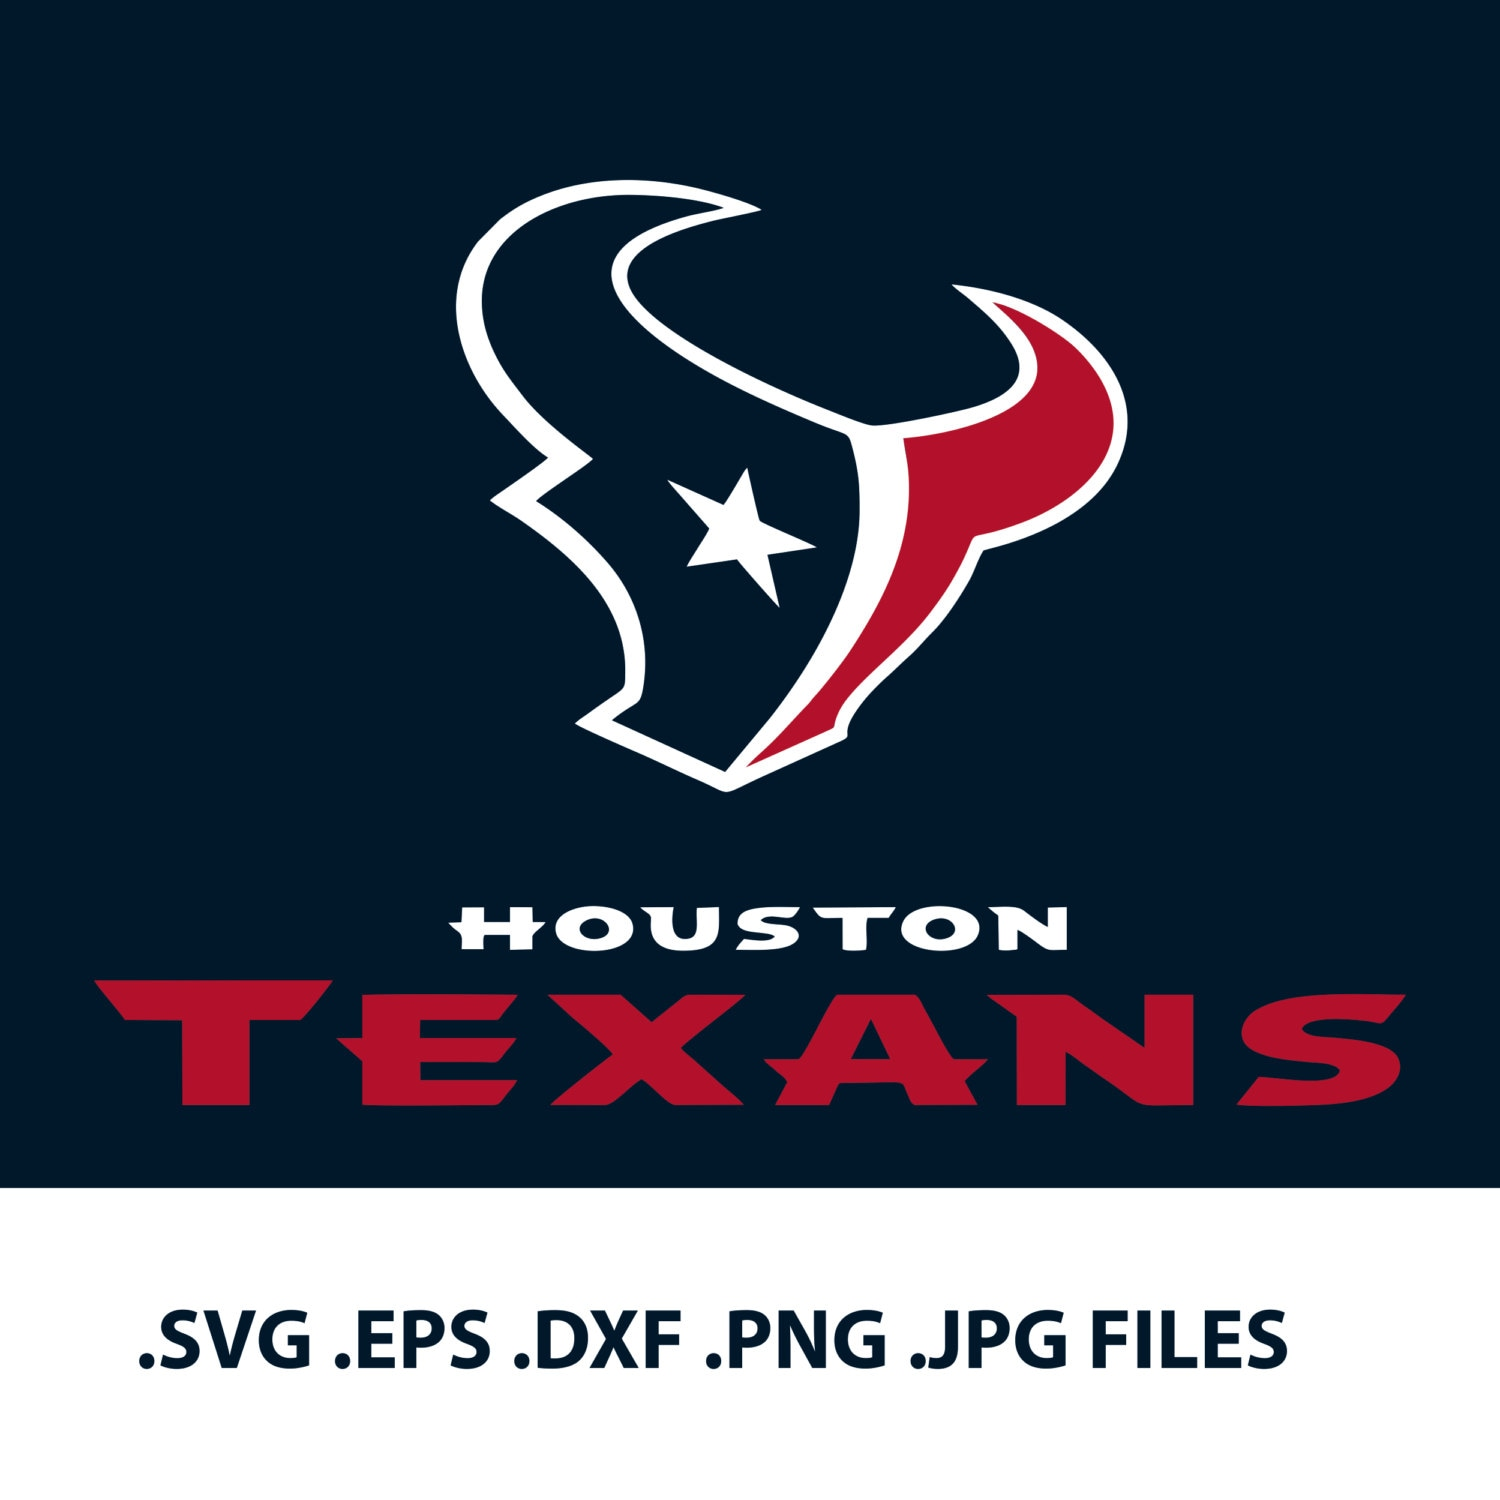 houston texans logo svg vector design svg eps dxf png etsy rh etsy com Houston Texans Logo Clip Art texans nfl logo vector